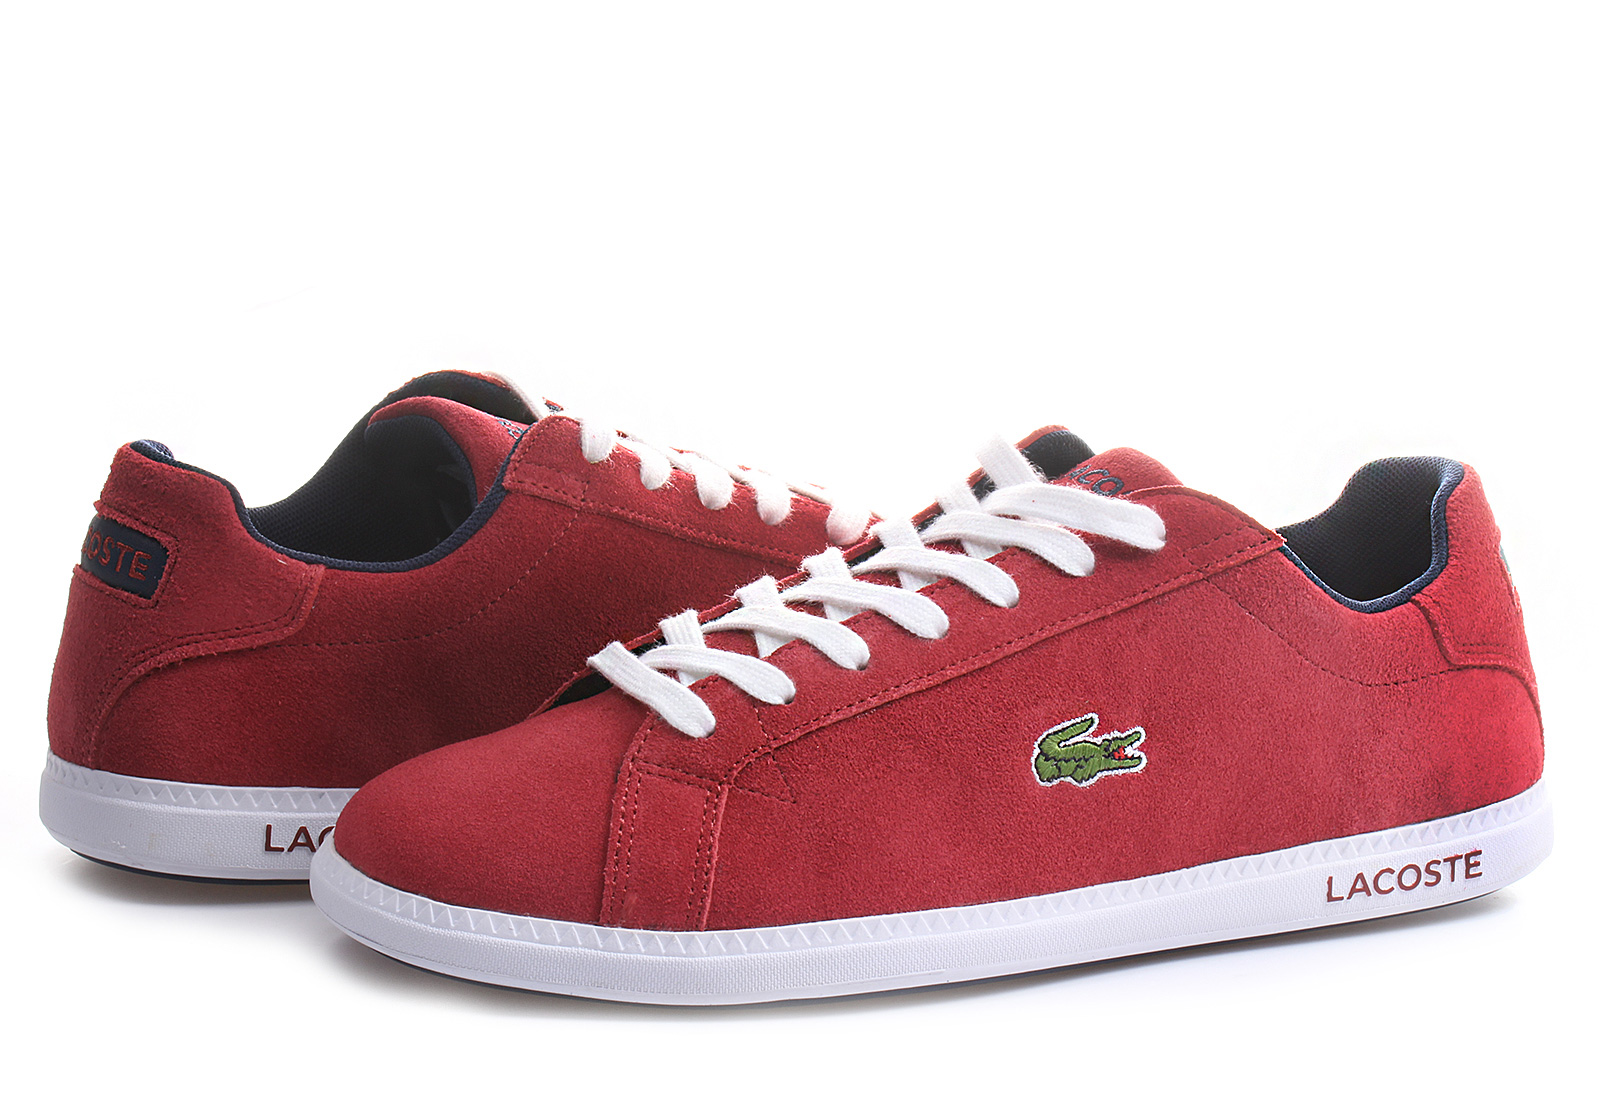 lacoste shoes graduate lacoste men shoes street shoes red suede shoes